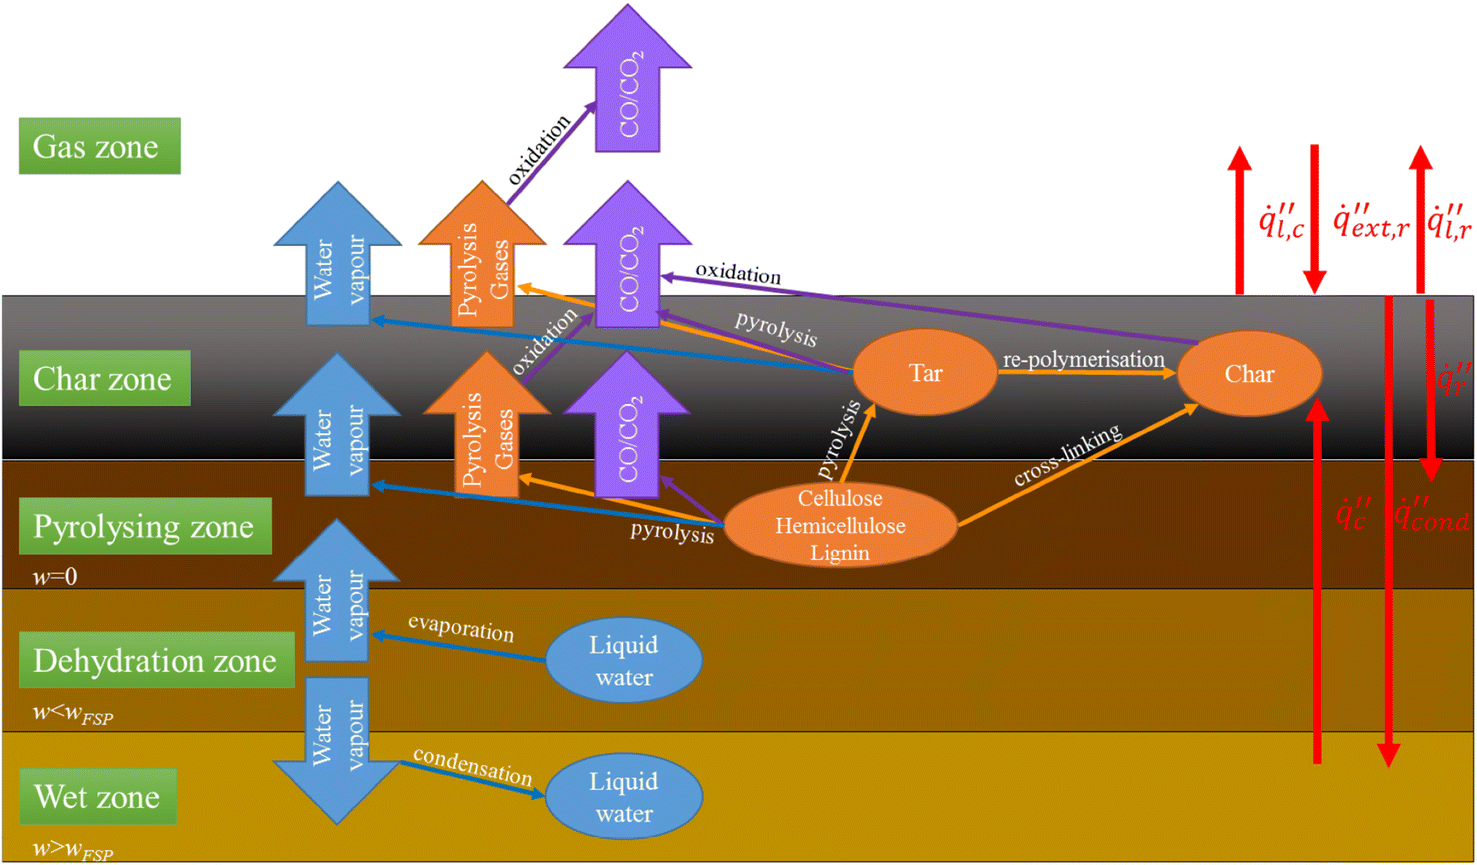 A Review of Factors Affecting the Burning Behaviour of Wood